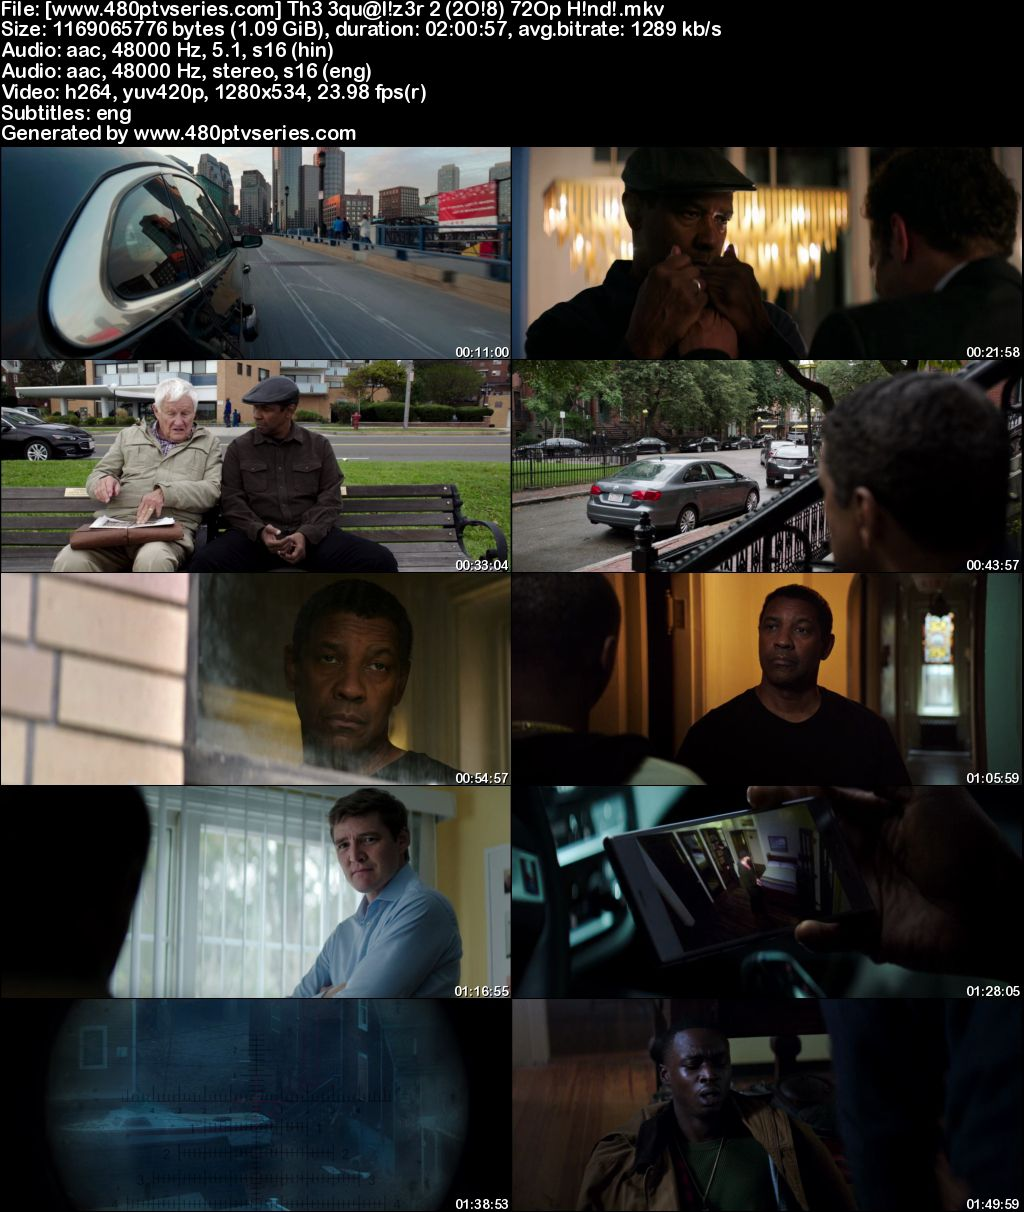 Watch Online Free The Equalizer 2 (2018) Full Hindi Dual Audio Movie Download 480p 720p Bluray